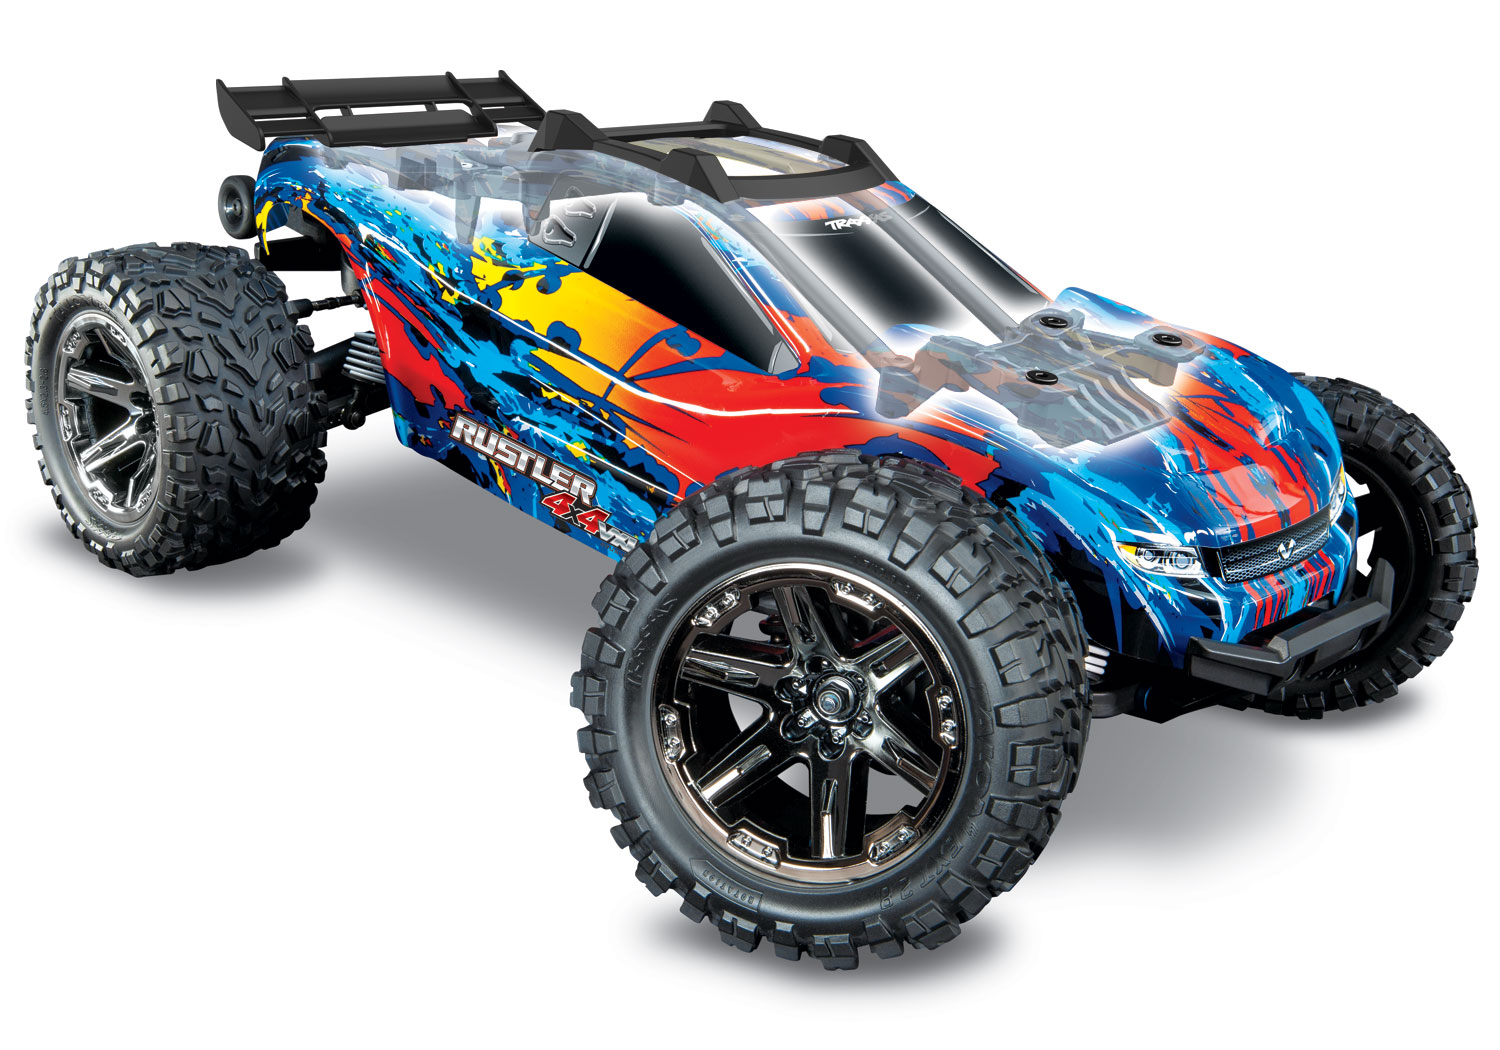 Traxxas Rustler 4X4 VXL, 1/10 Stadium Truck COMING SOON ORDER NOW